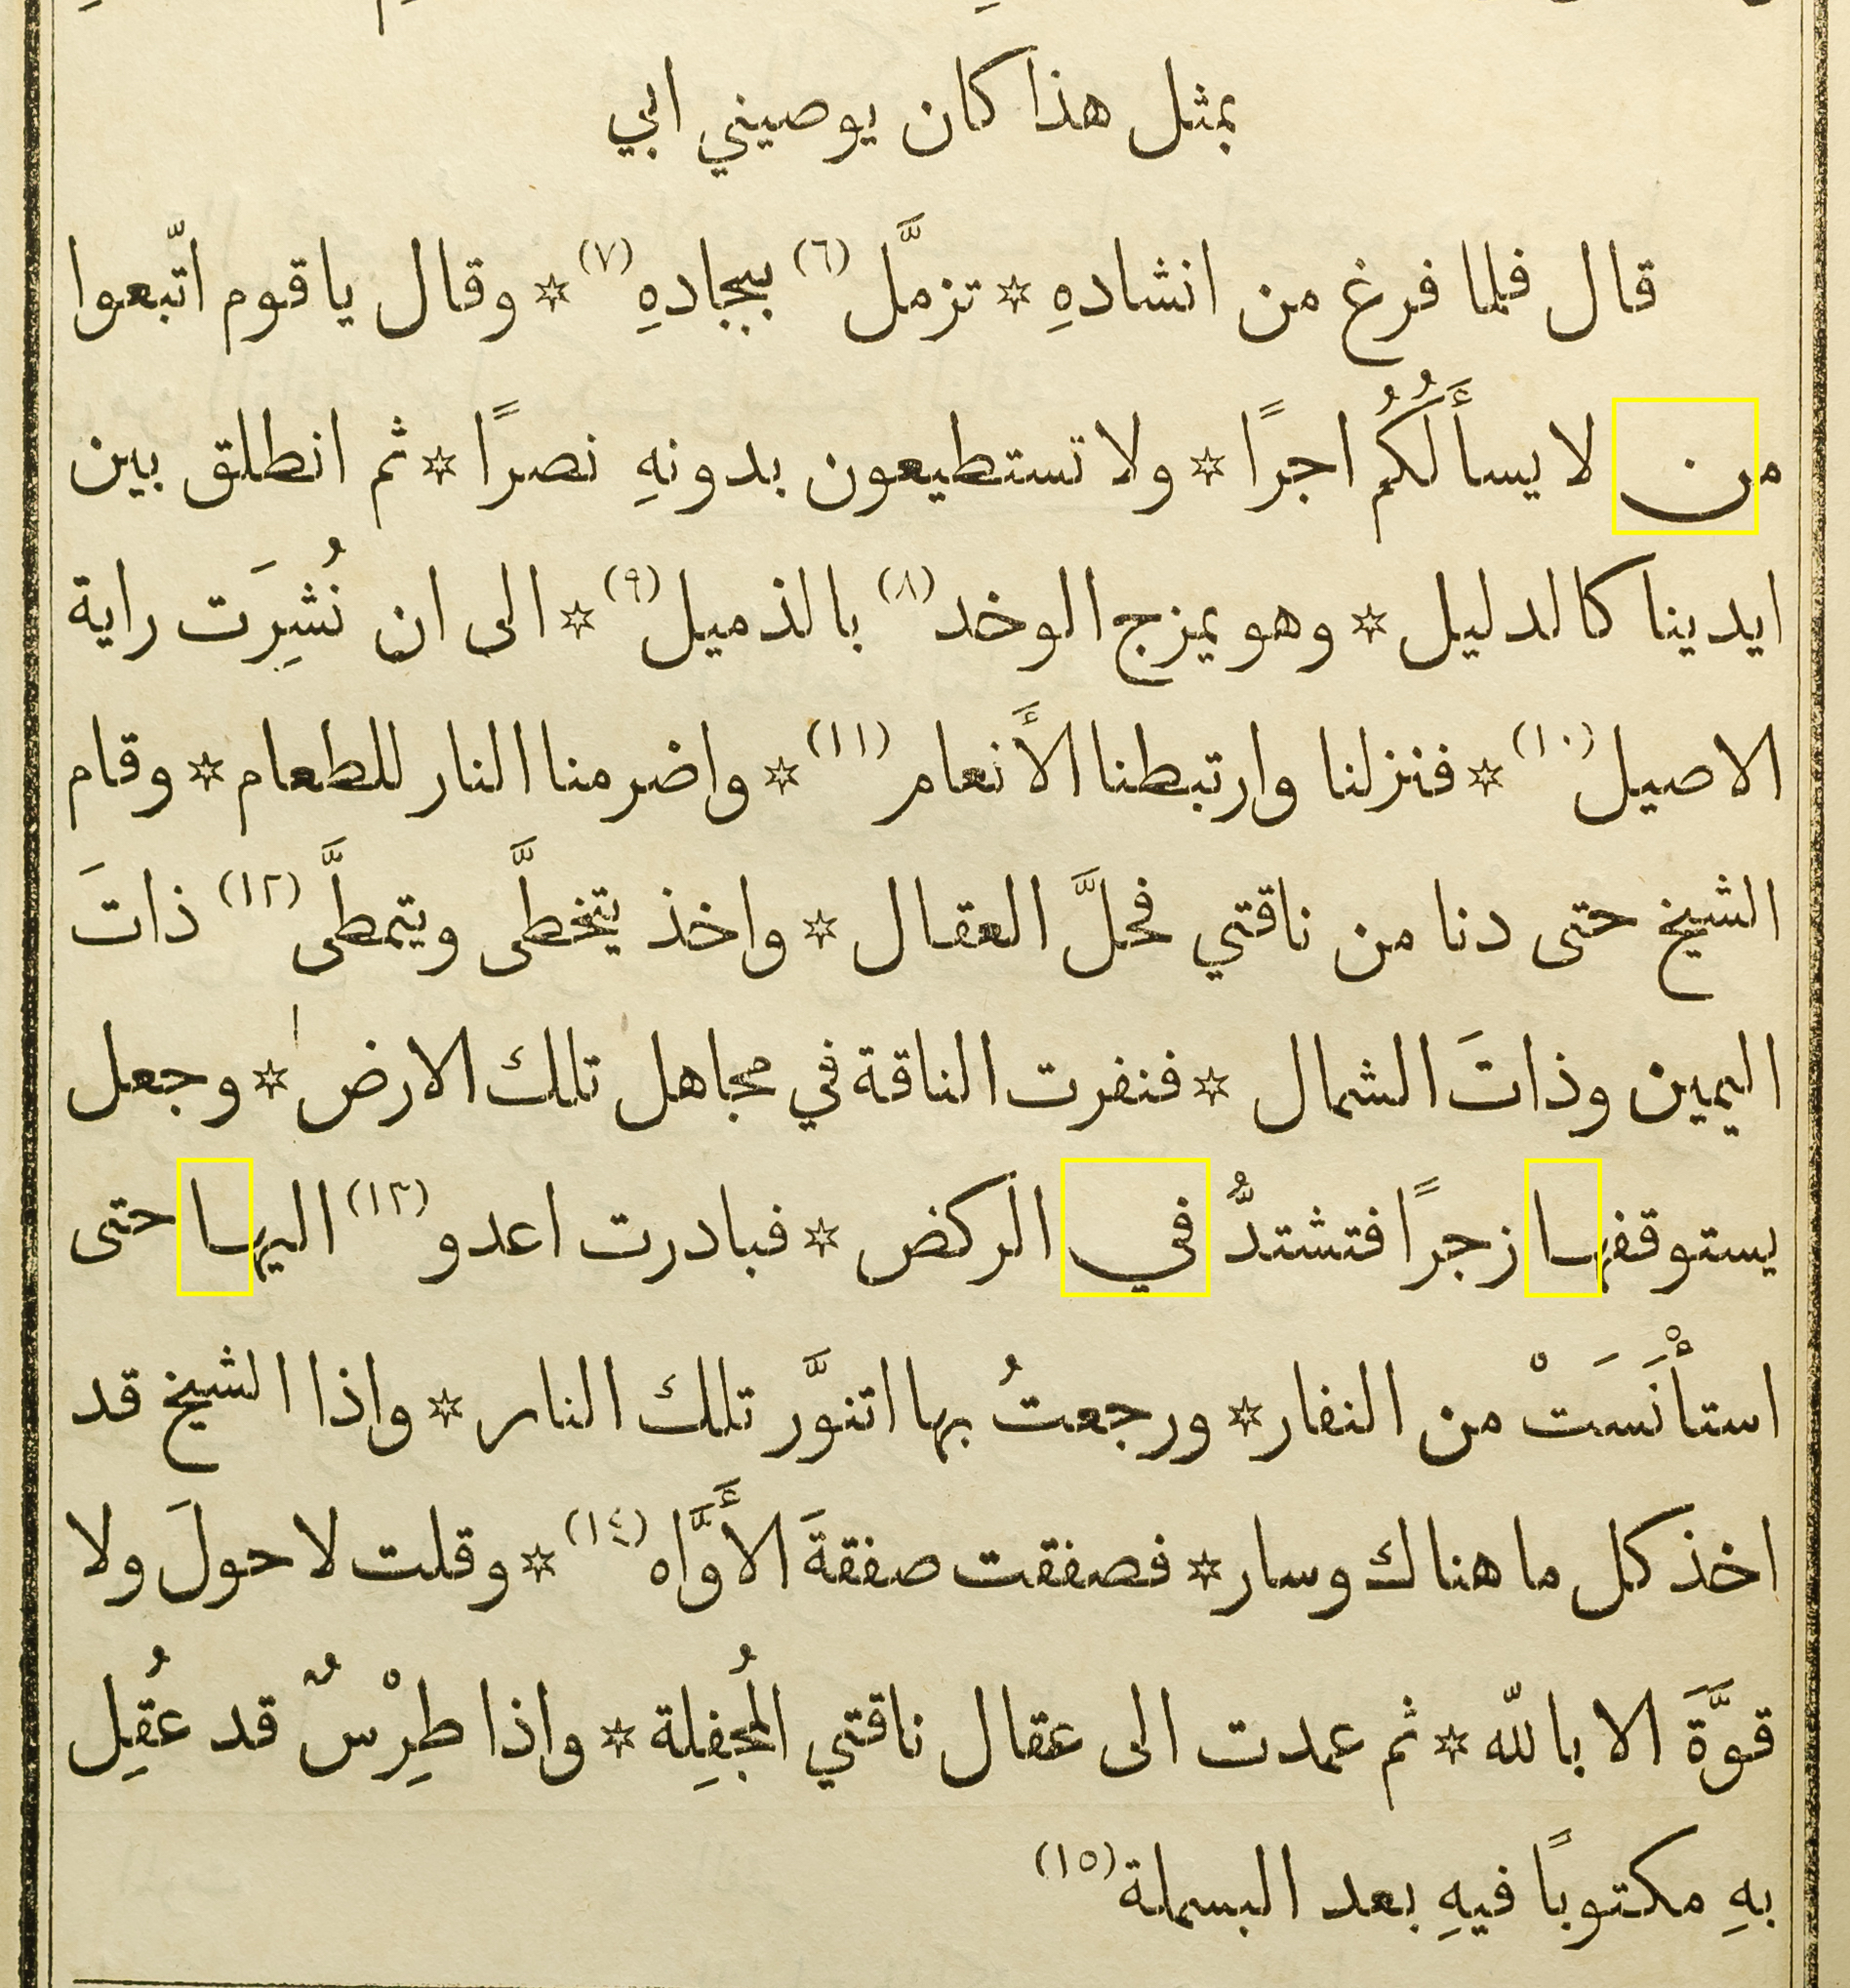 Kitāb Majma' al-Bahrayn, p.7, courtesy of the Austrian National Library, 30571-B, http://data.onb.ac.at/rec/AC10151400